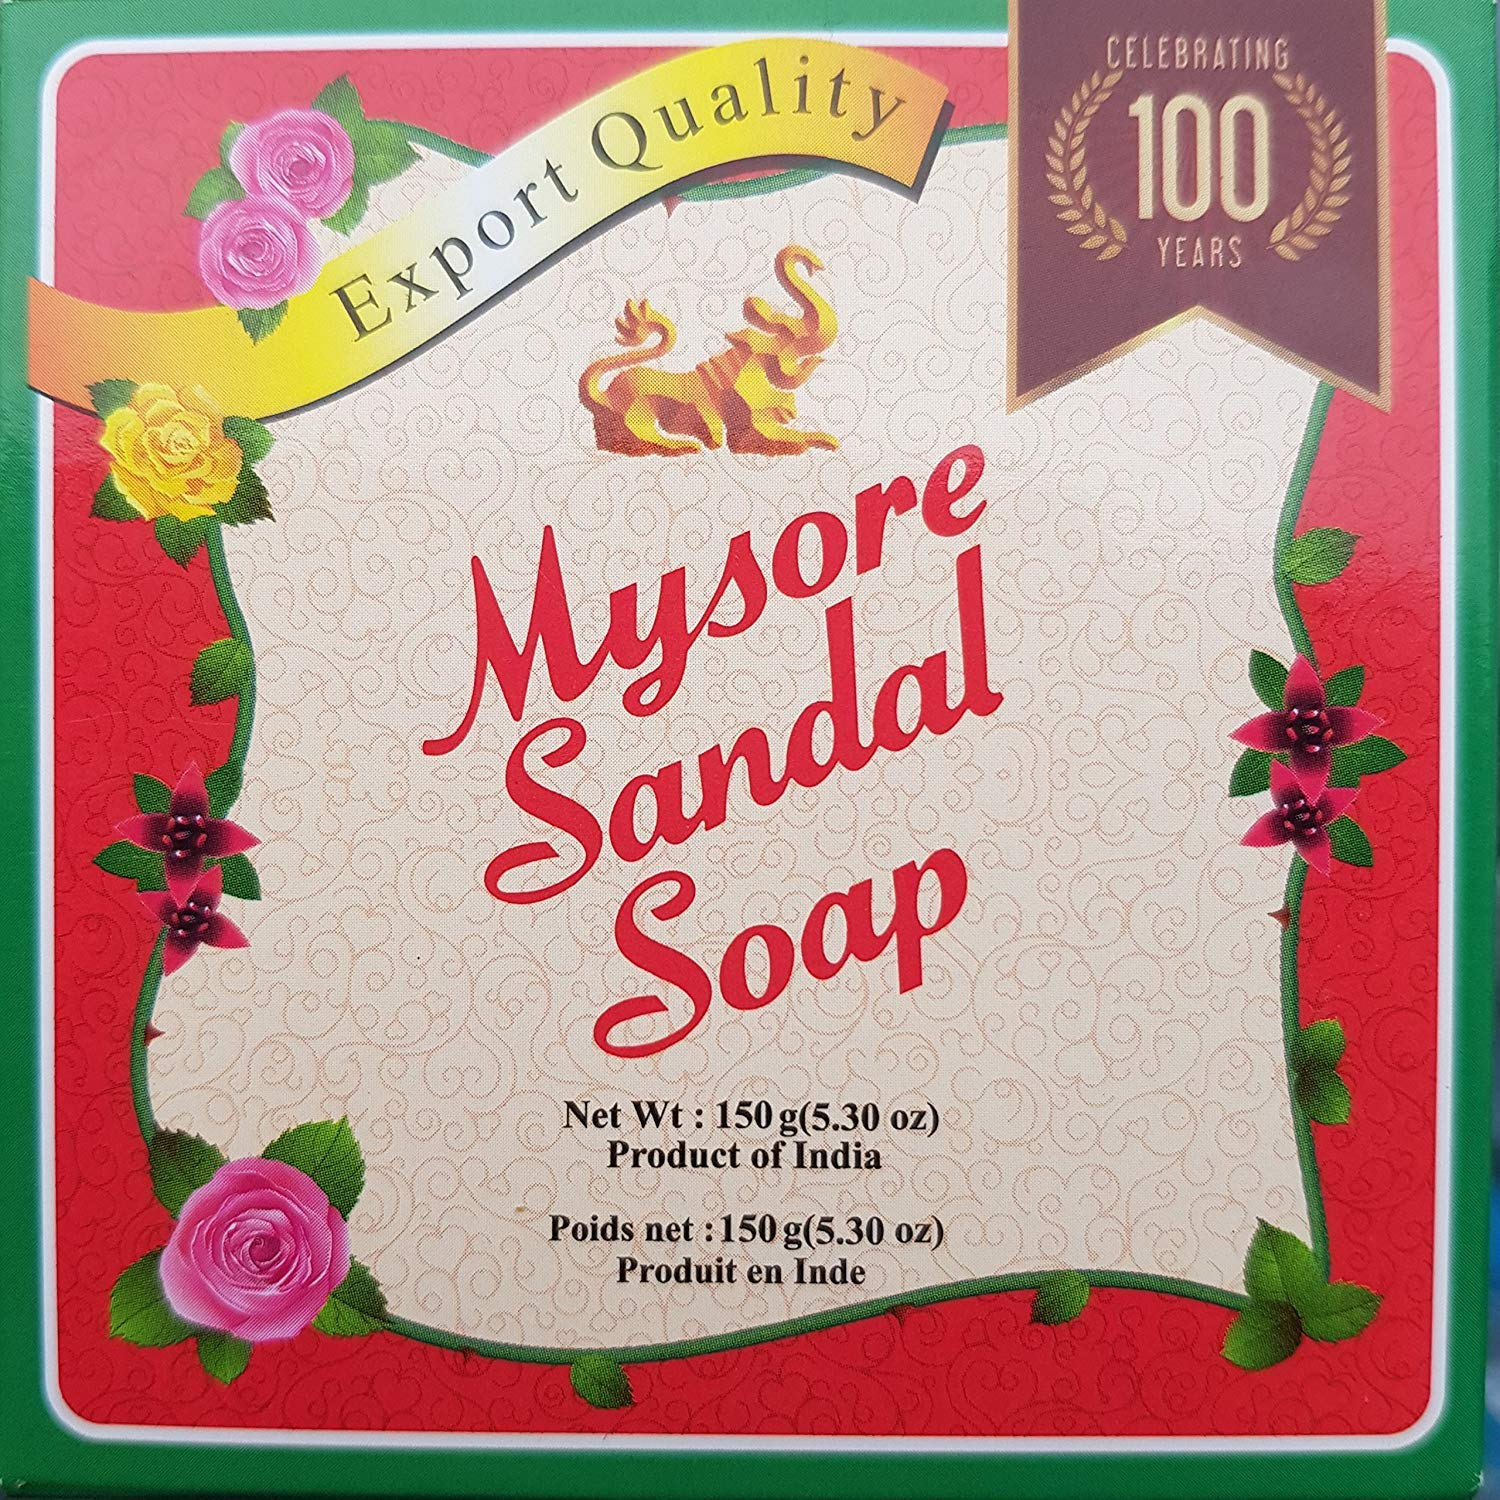 Mysore Sandalwood Soap 150G Double Size (Pack Of 3) by Mysore Sandal Spicy World